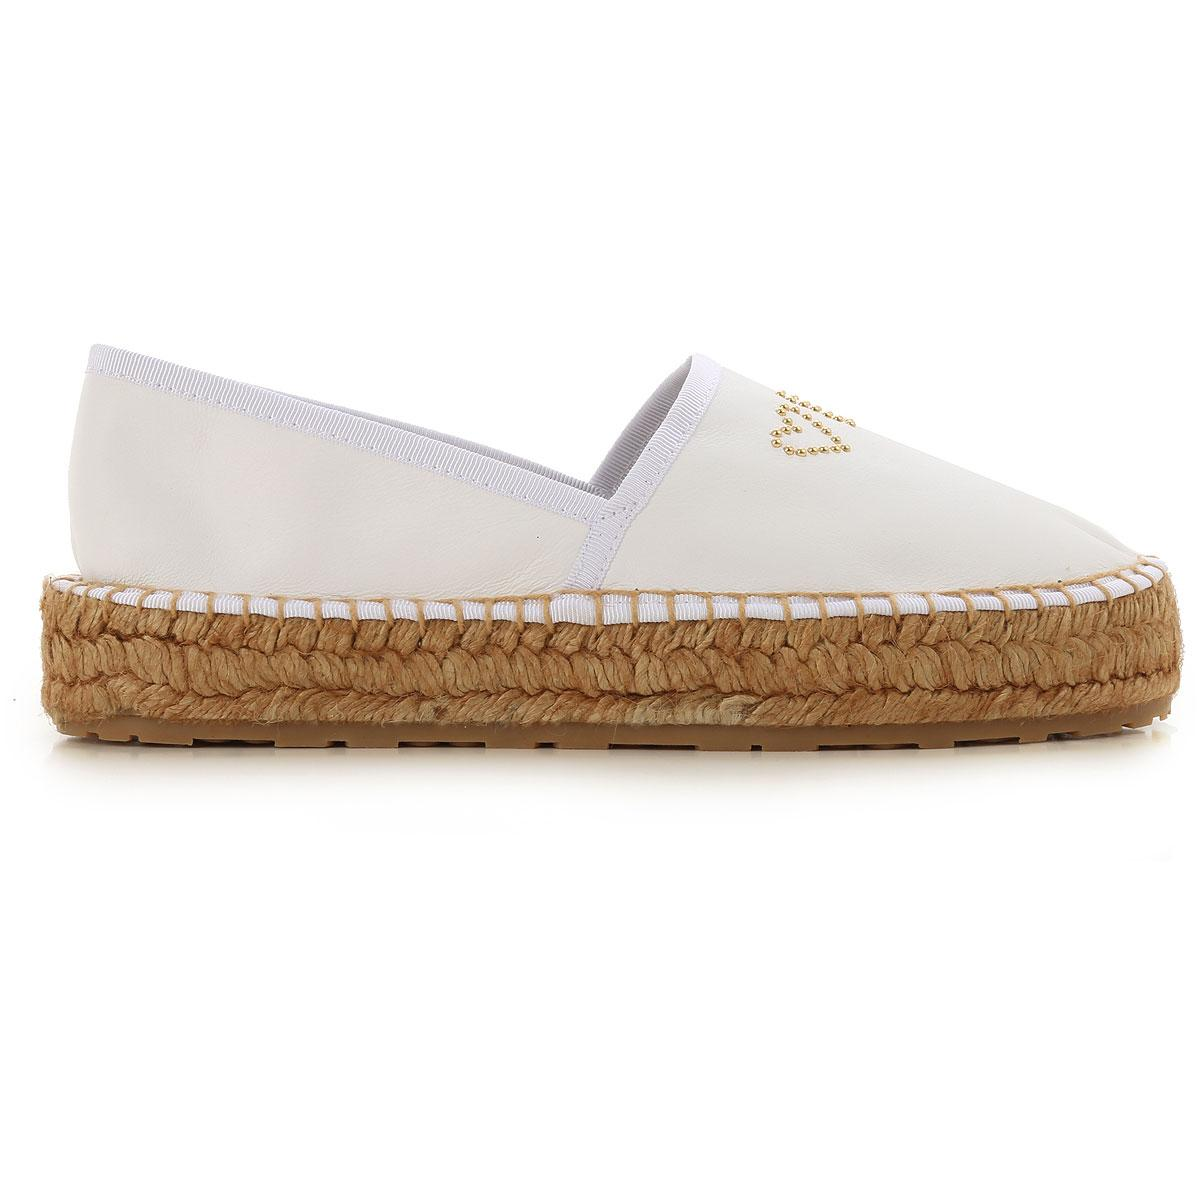 18c38ed38e90b Lyst - Moschino Slip On Sneakers For Women in White